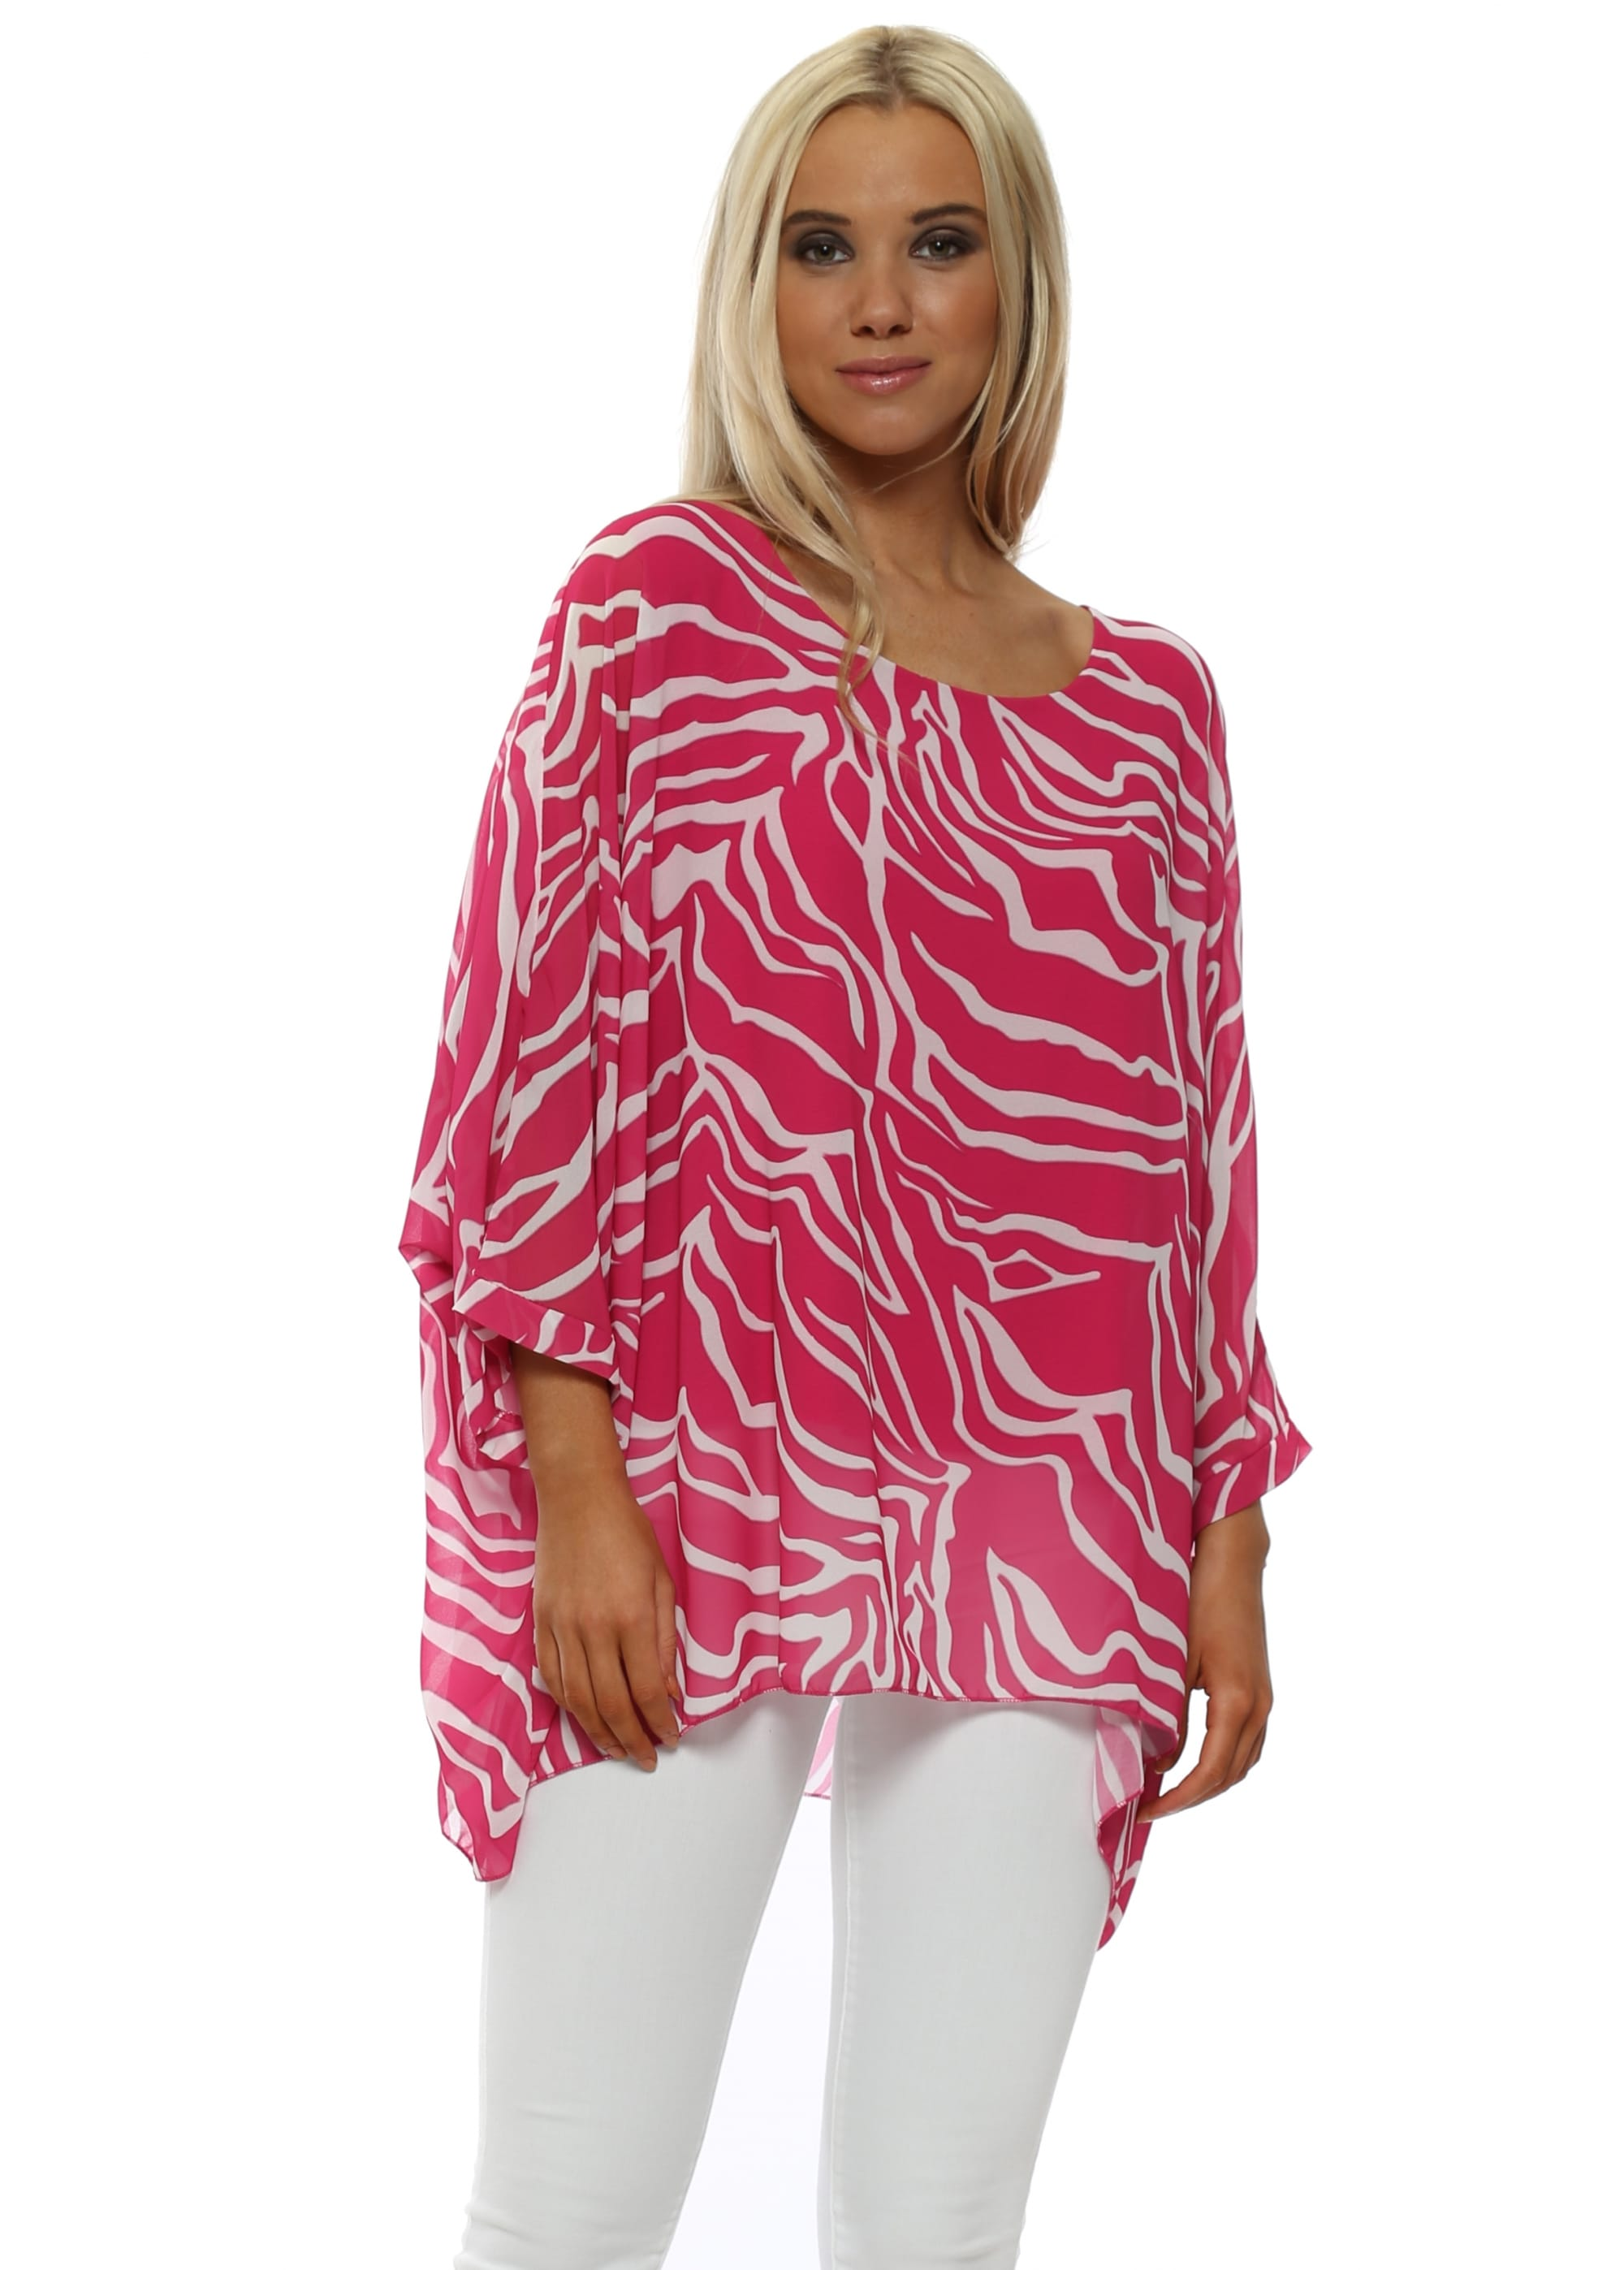 new high quality release info on cheap prices Hot Pink Zebra Print Batwing Top